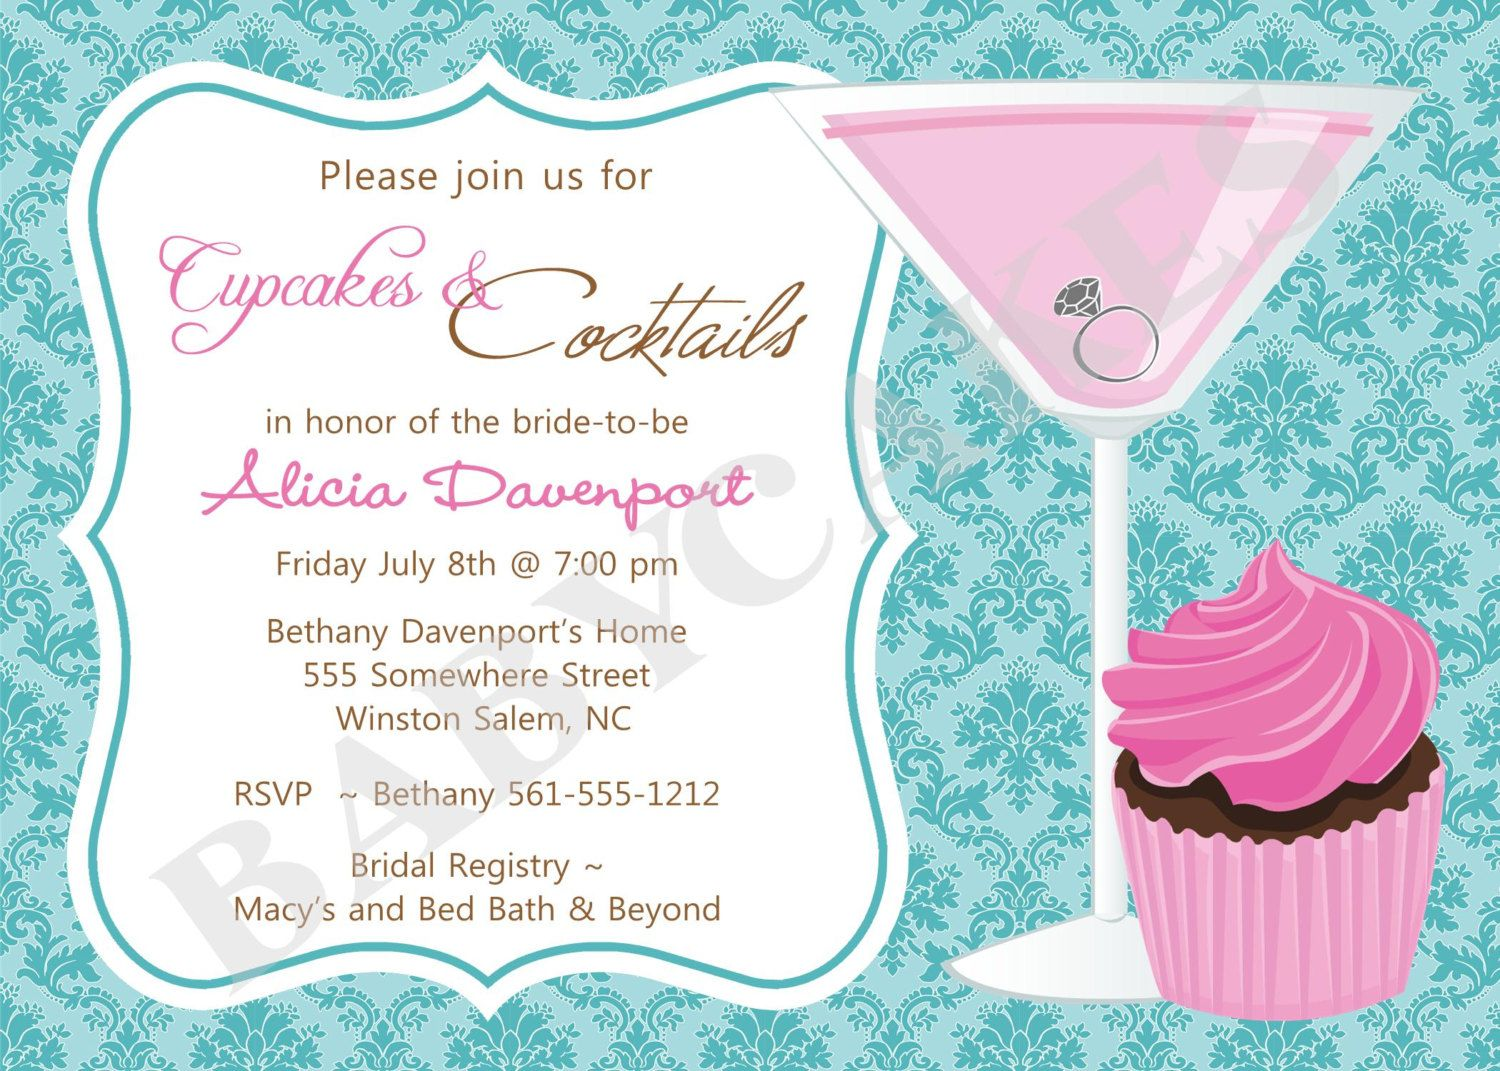 cupcakes and cocktails bridal shower invitation bachelorette diy print your own matching party printables available